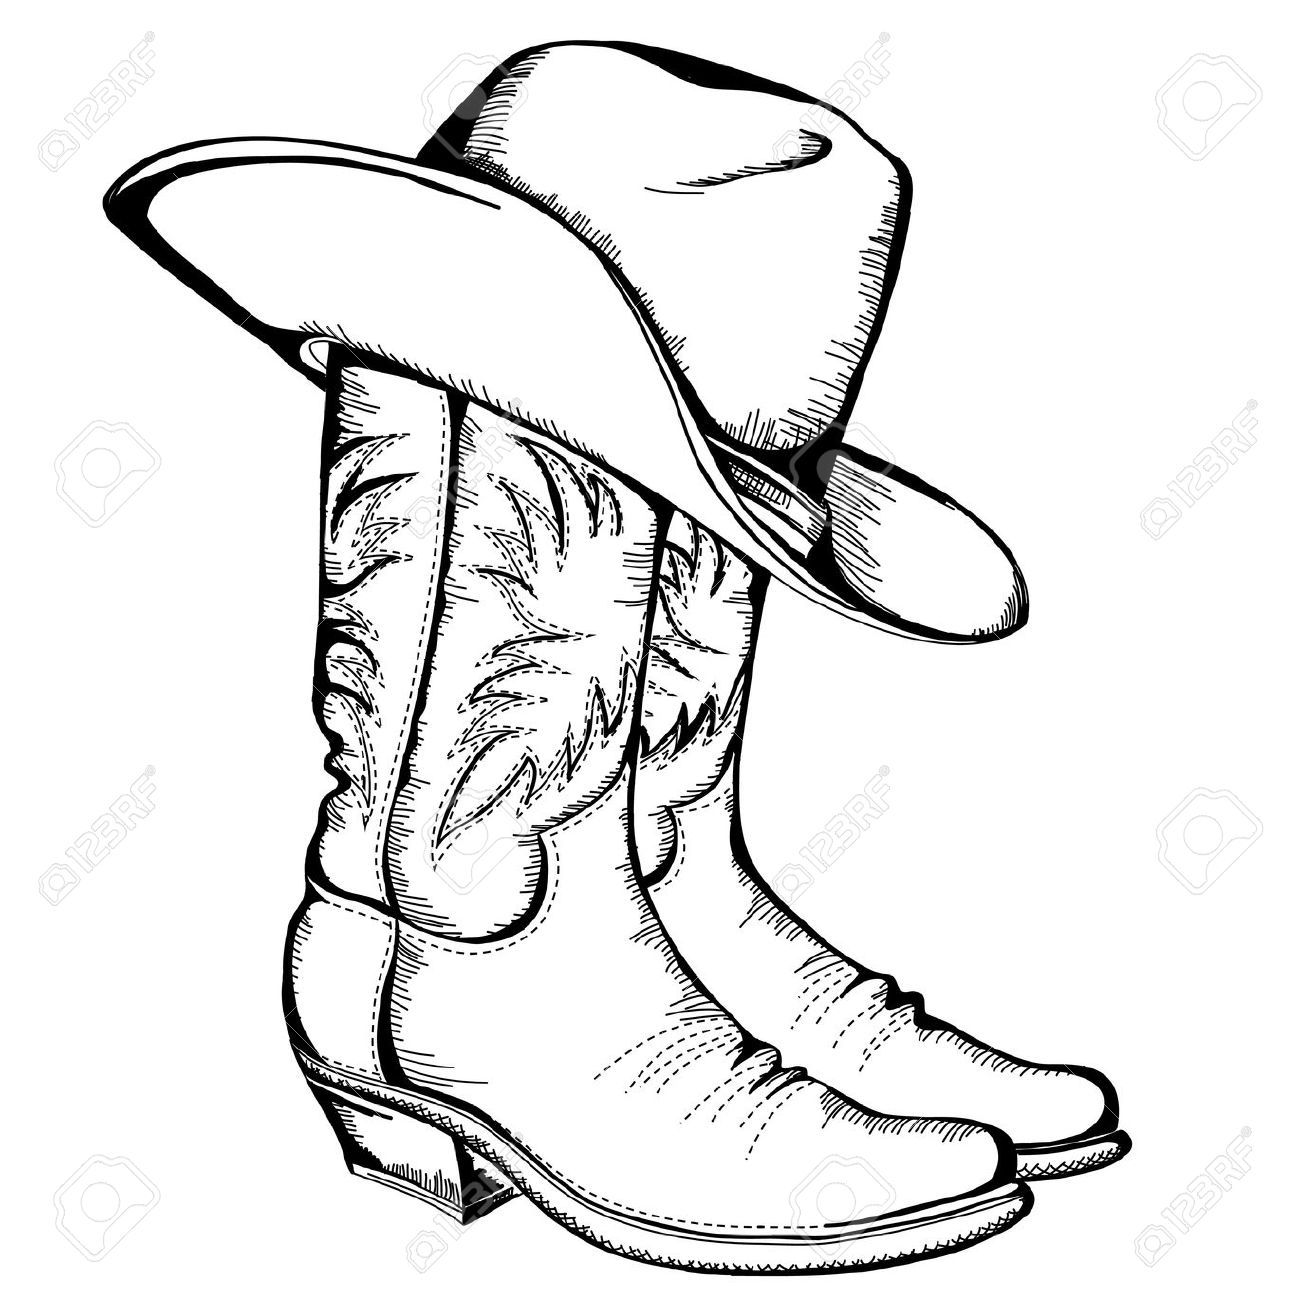 Cowboy Boots And Hat Graphic Illustration Royalty Free Cliparts ...